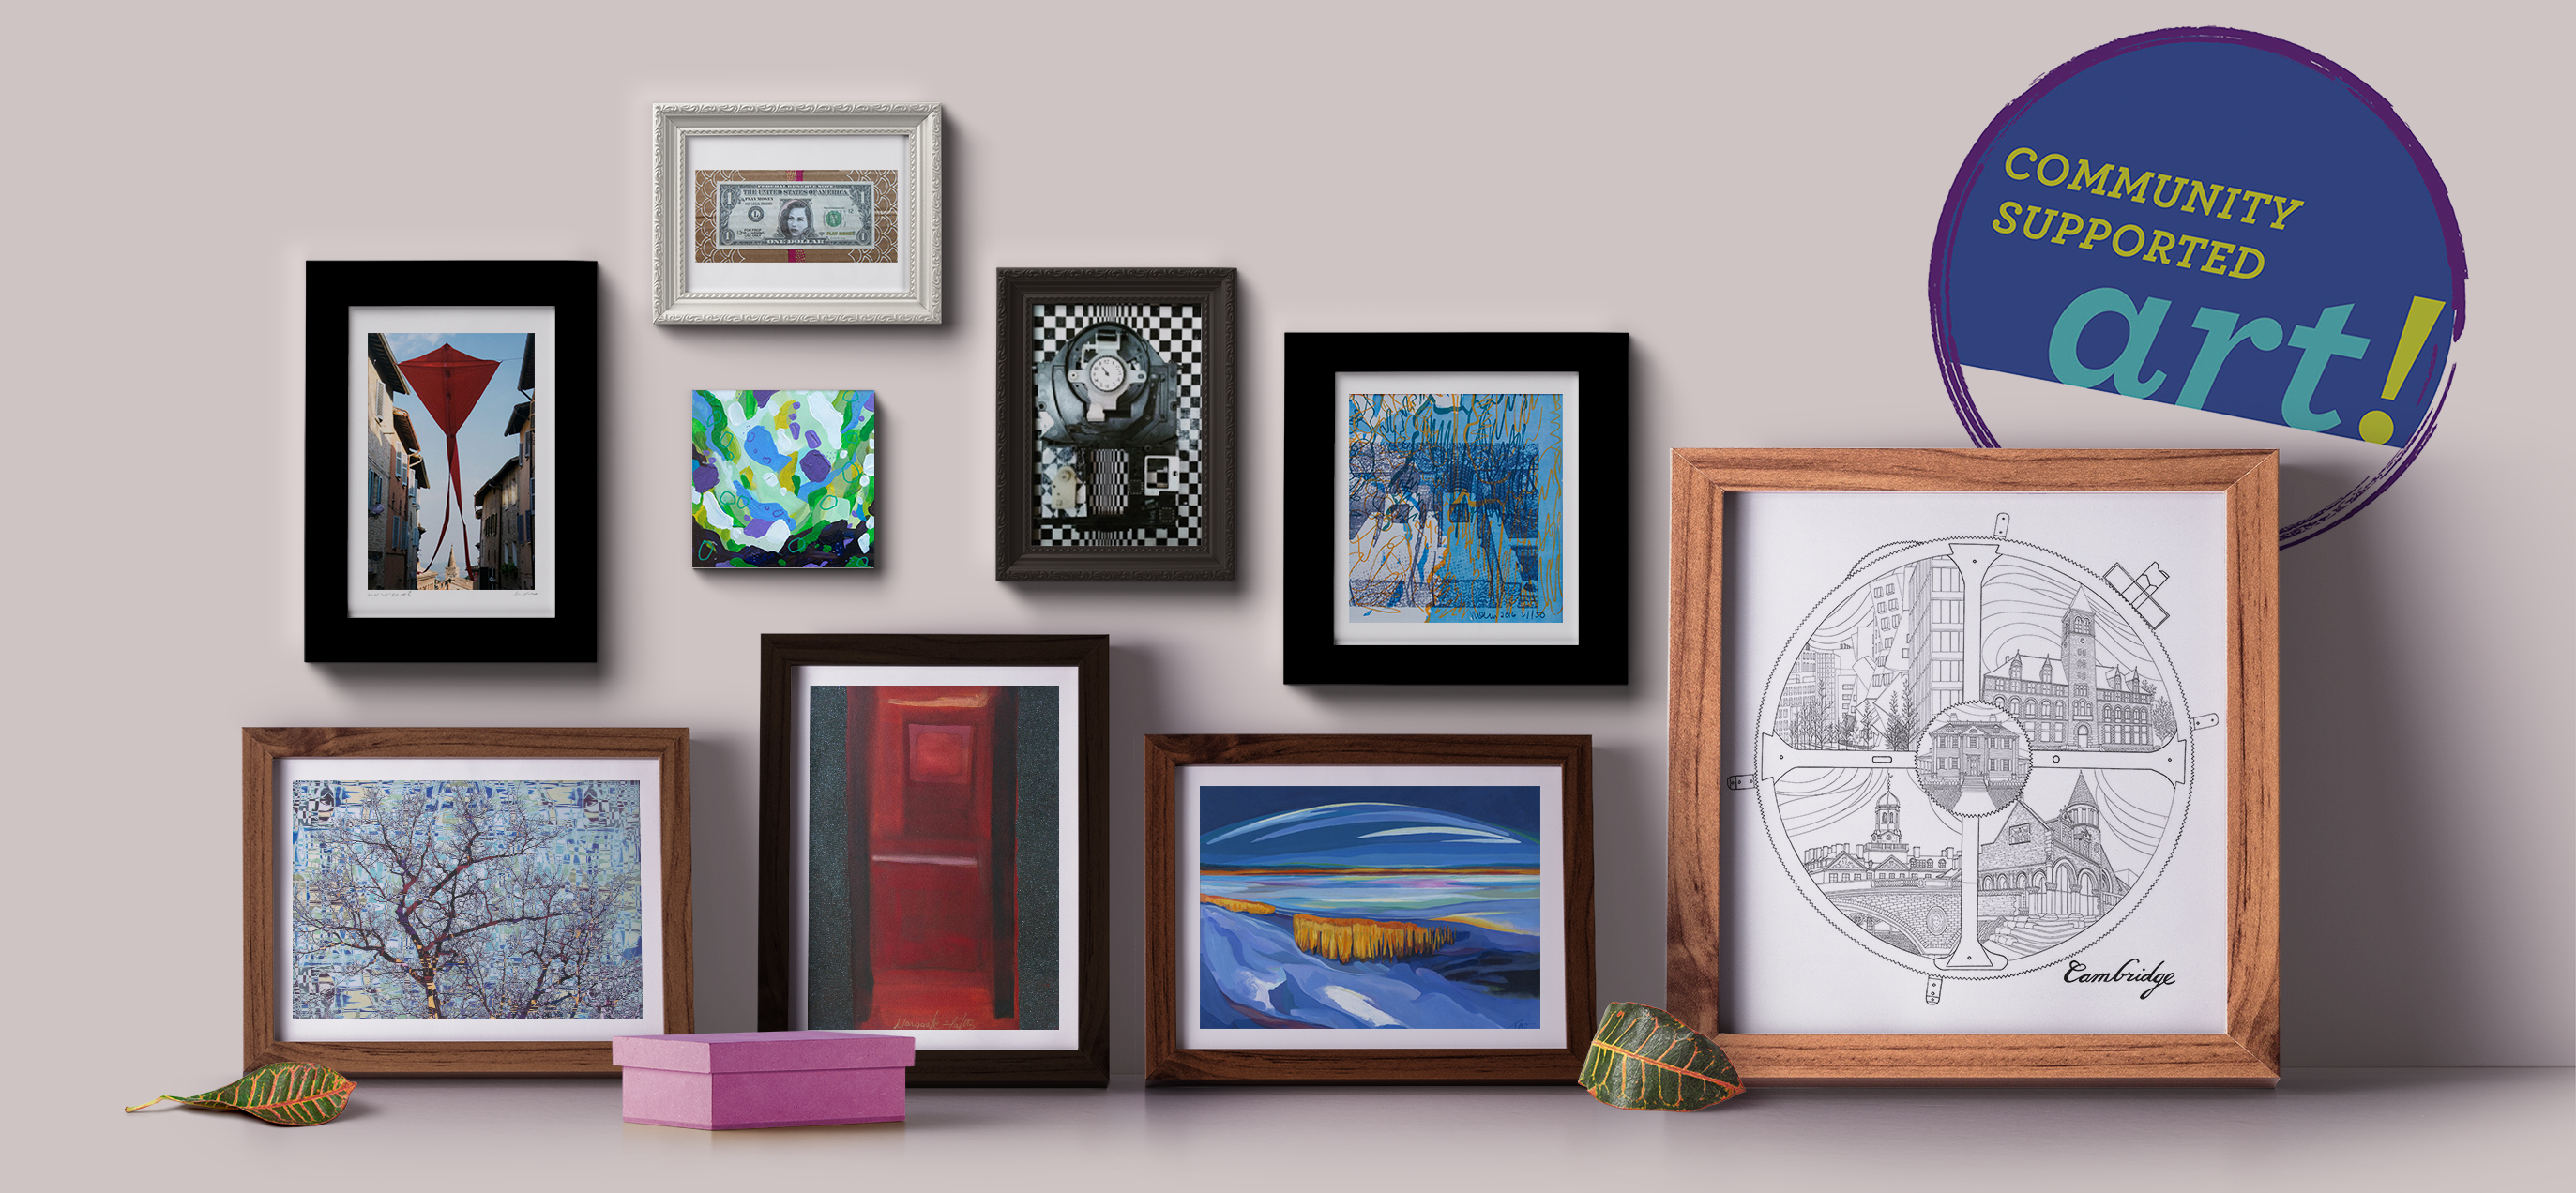 A collection of the 9 2016 Community Supported Artworks, framed grouped against a wall